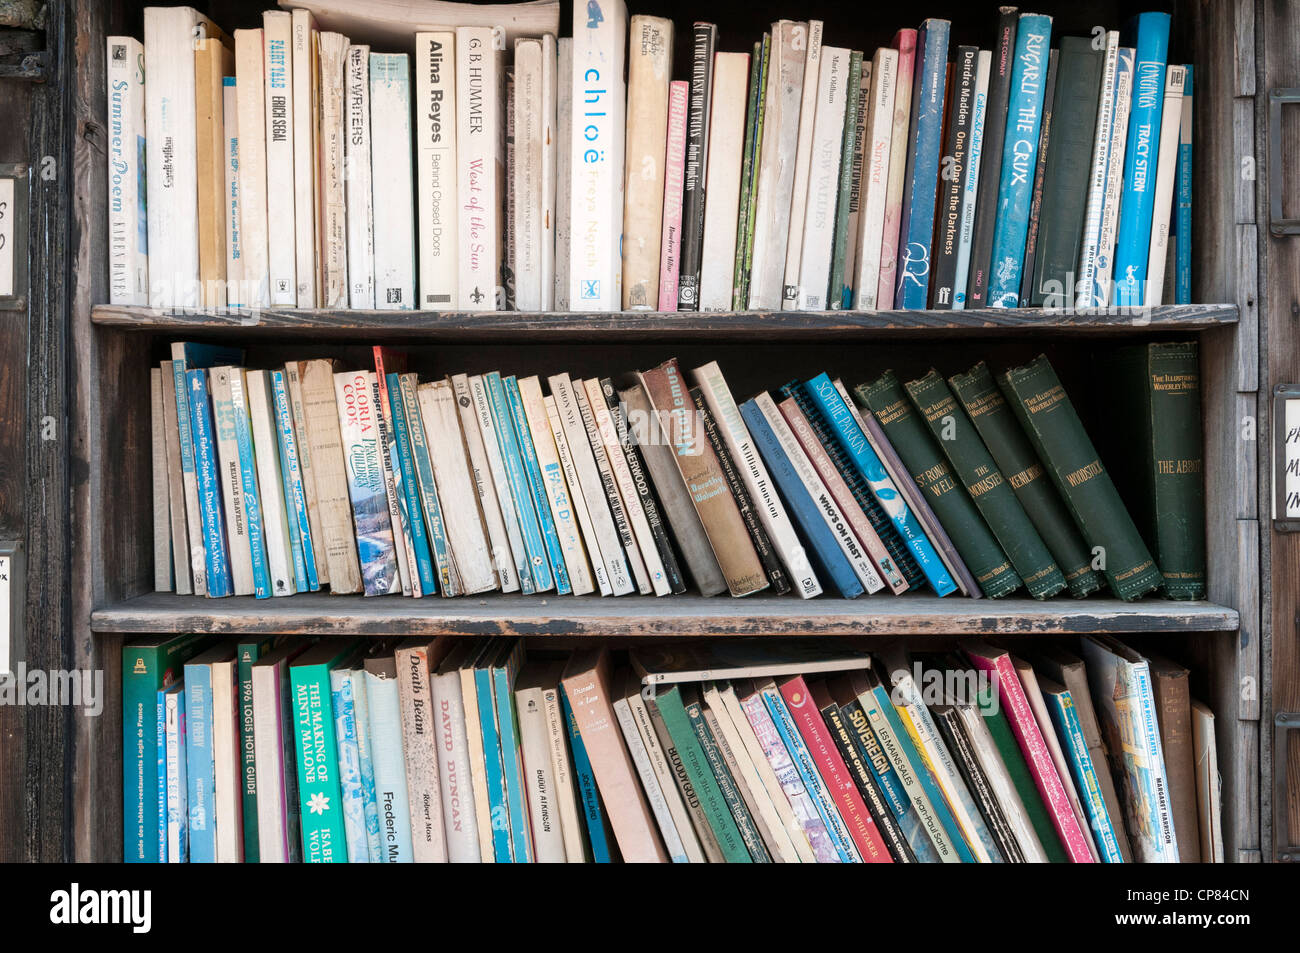 Bookshelf with old books - Stock Image